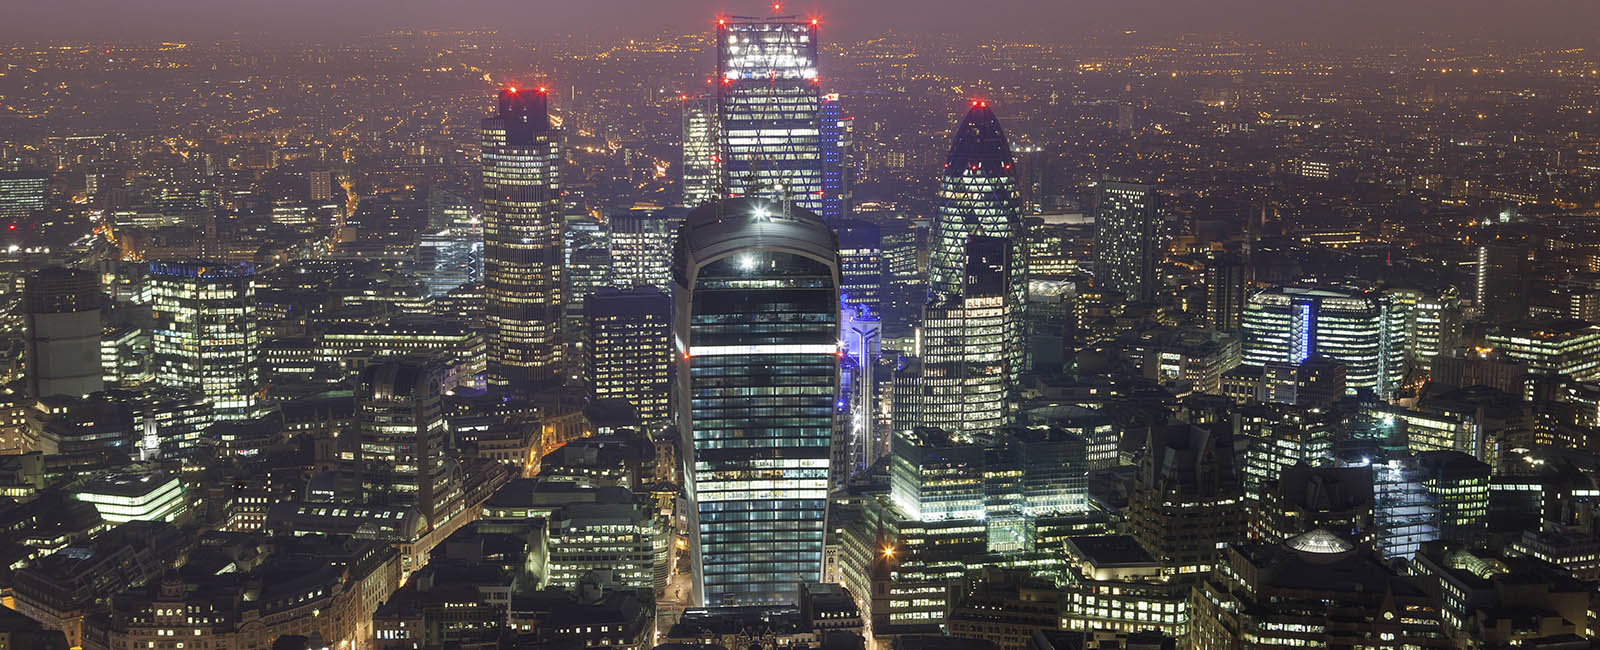 The United Kingdom offers investors the opportunity to become residents through its Immigrant Investor Program.